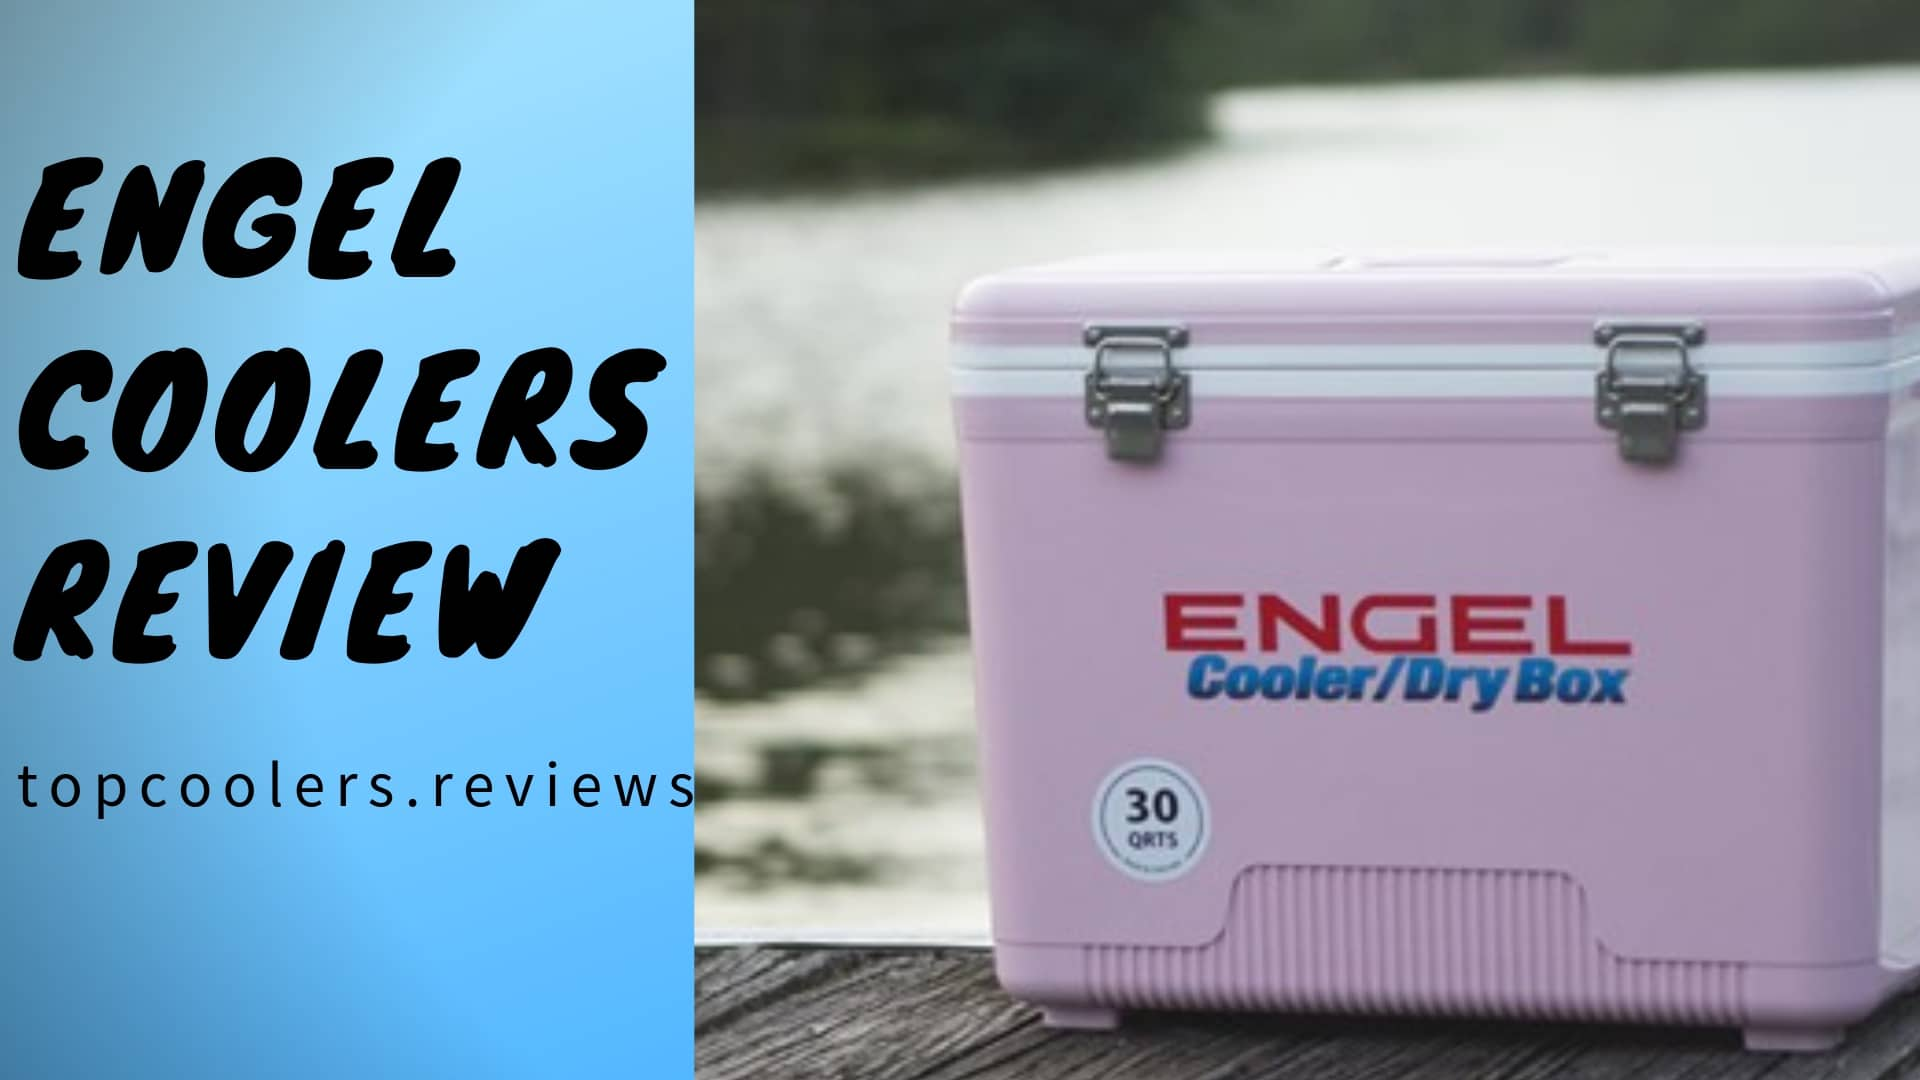 Engel Coolers, Engel Coolers review